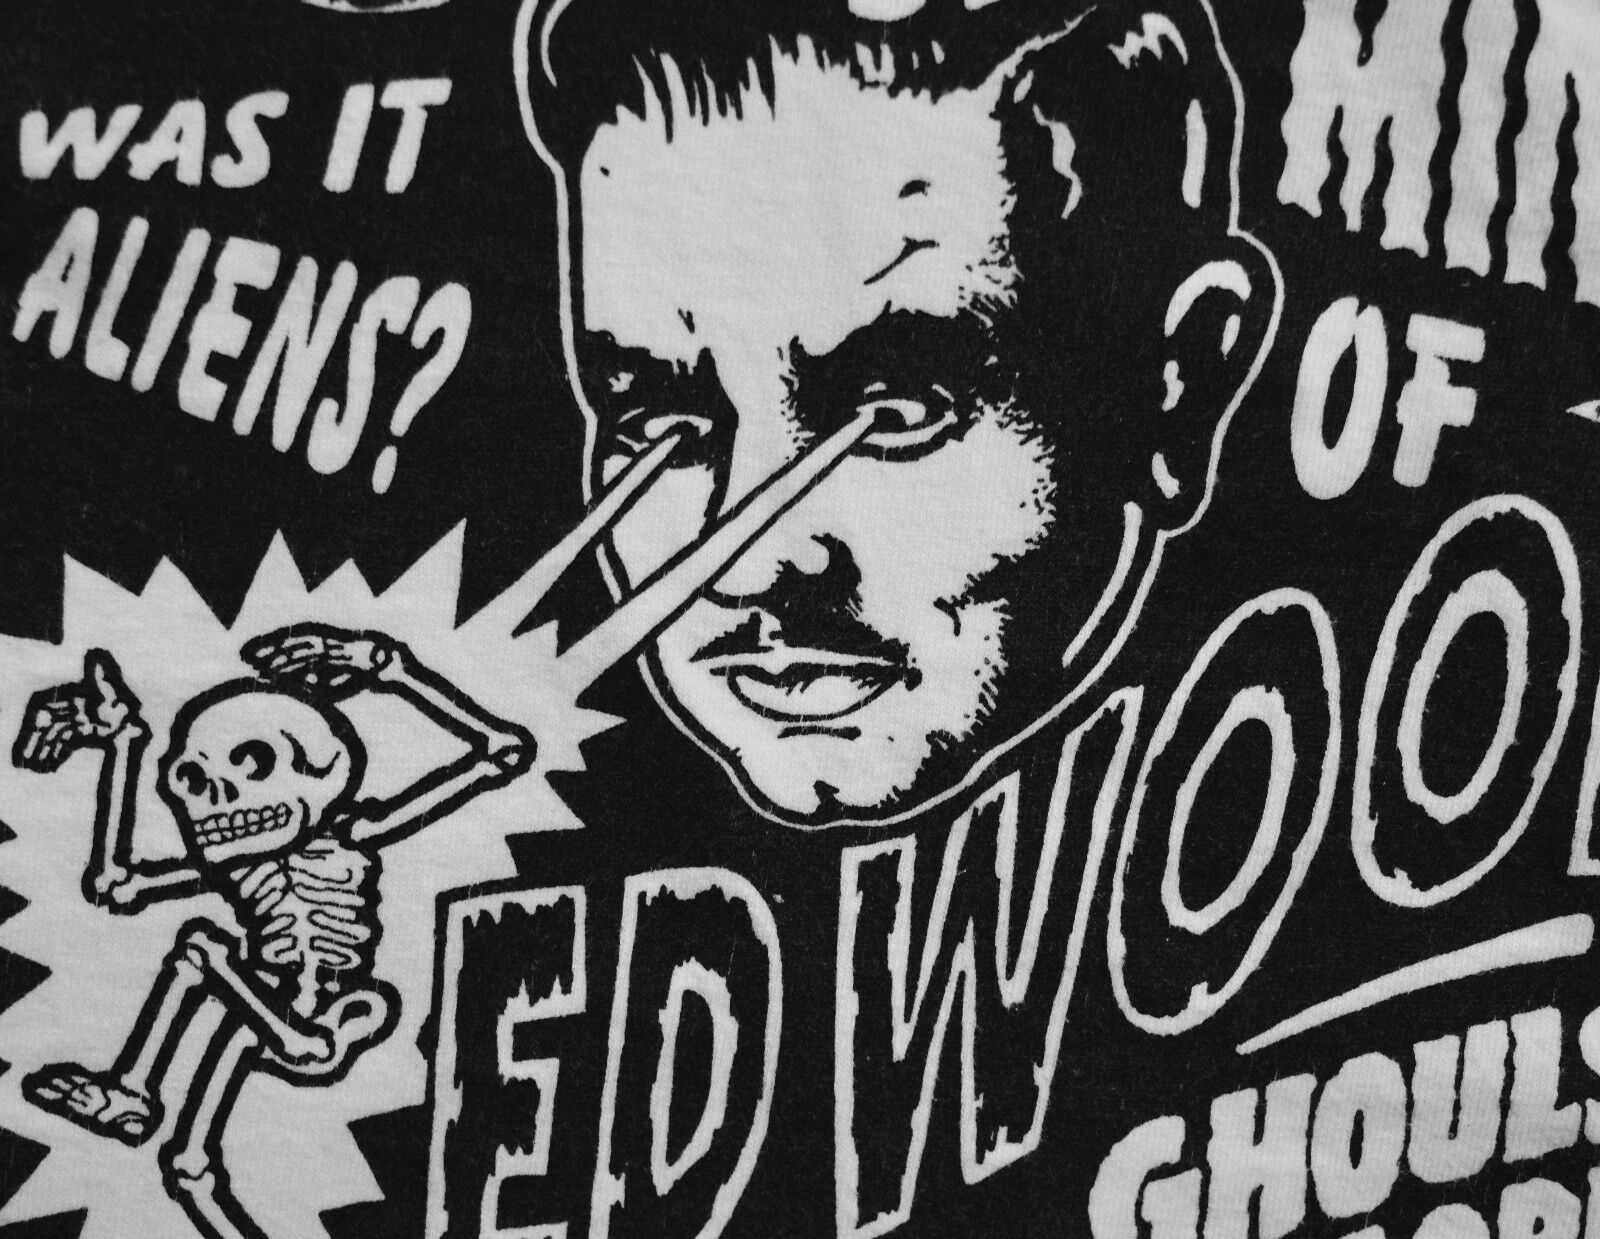 1996 90s director ed wood jr shirt vtg cult movie 60s 50s sci fi horror XL